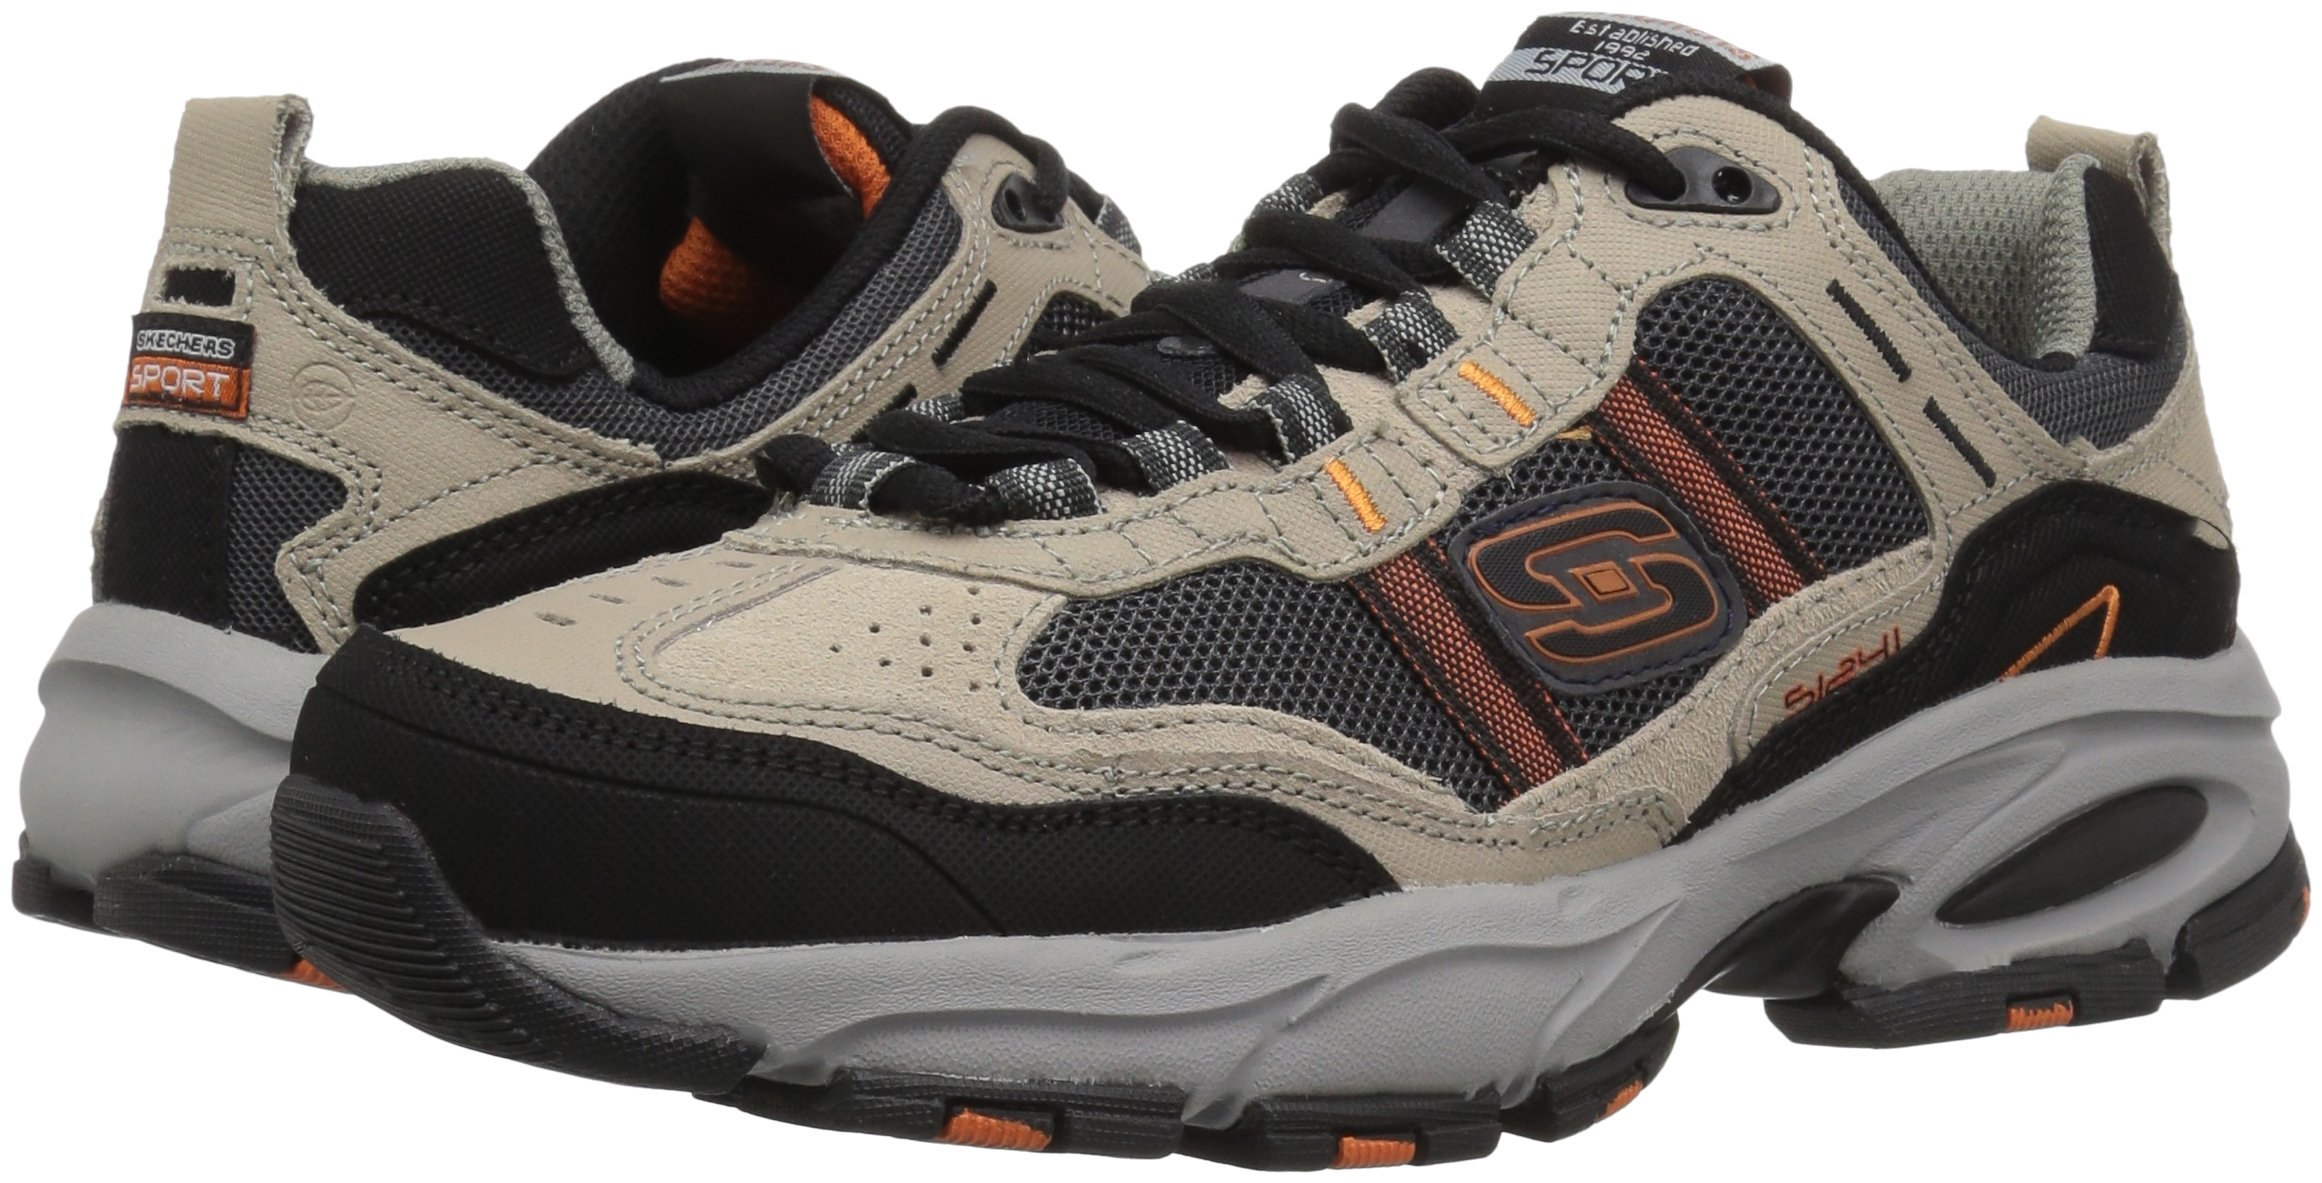 Skechers Sport Men's Vigor 2.0 Trait Memory Foam Sneaker, Taupe/Black, 7 M US by Skechers (Image #6)